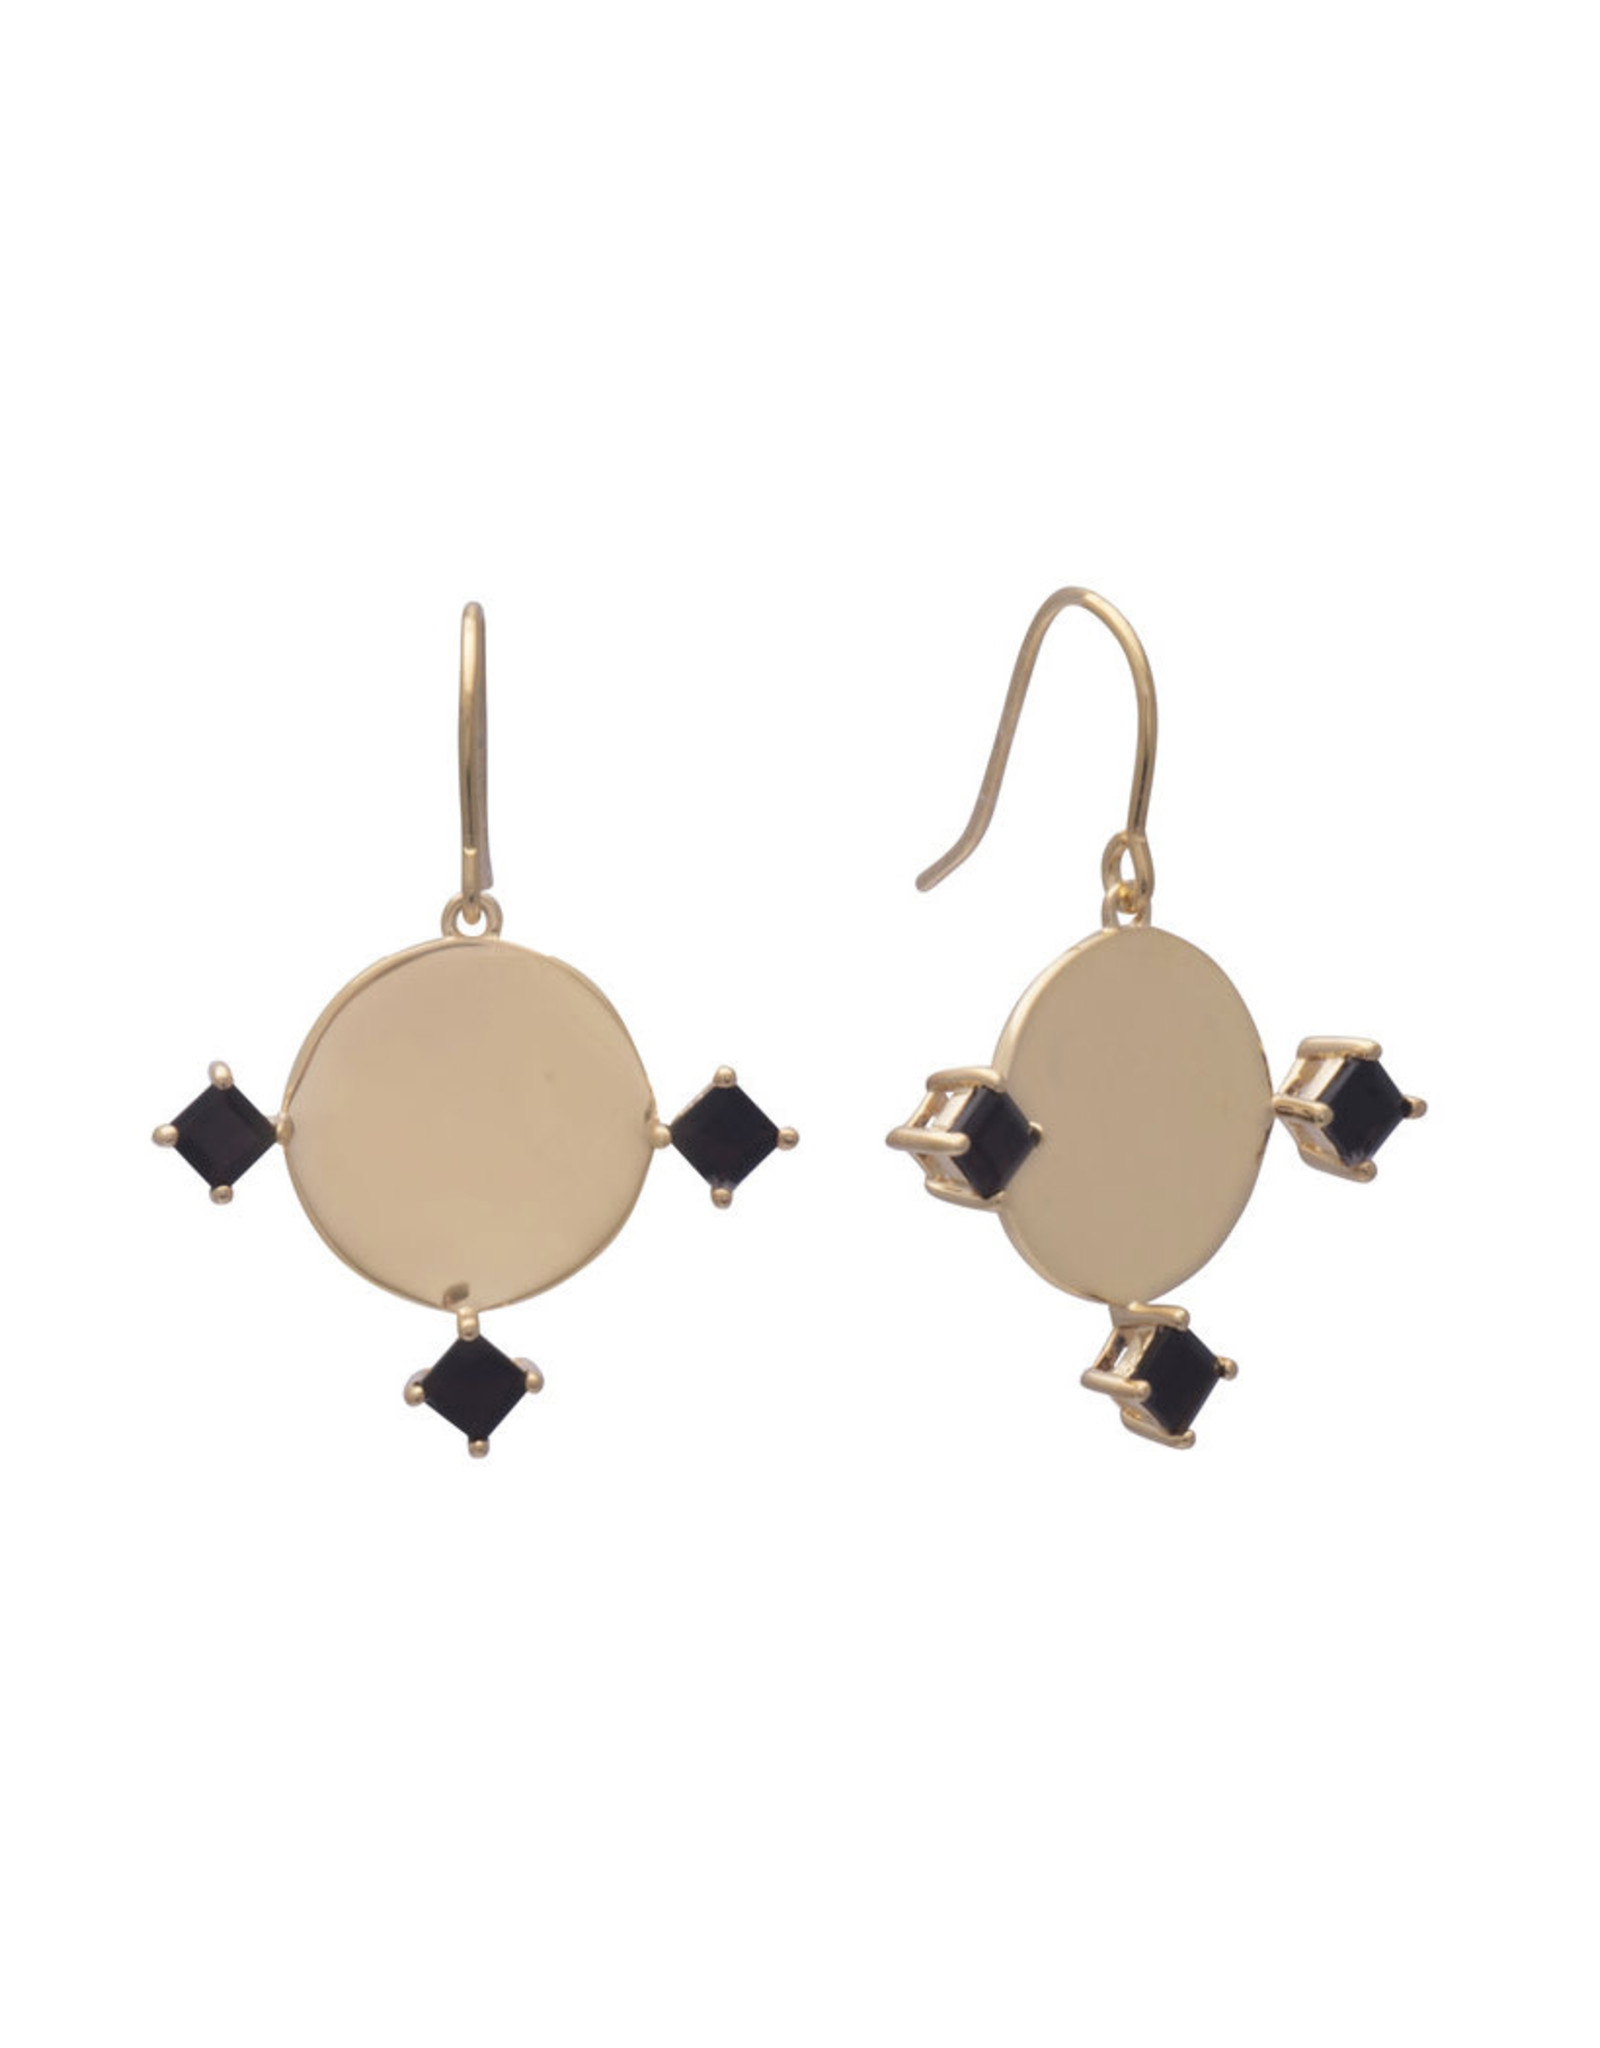 Sarah Mulder Jewelry Gold Imperial Earrings - Onyx